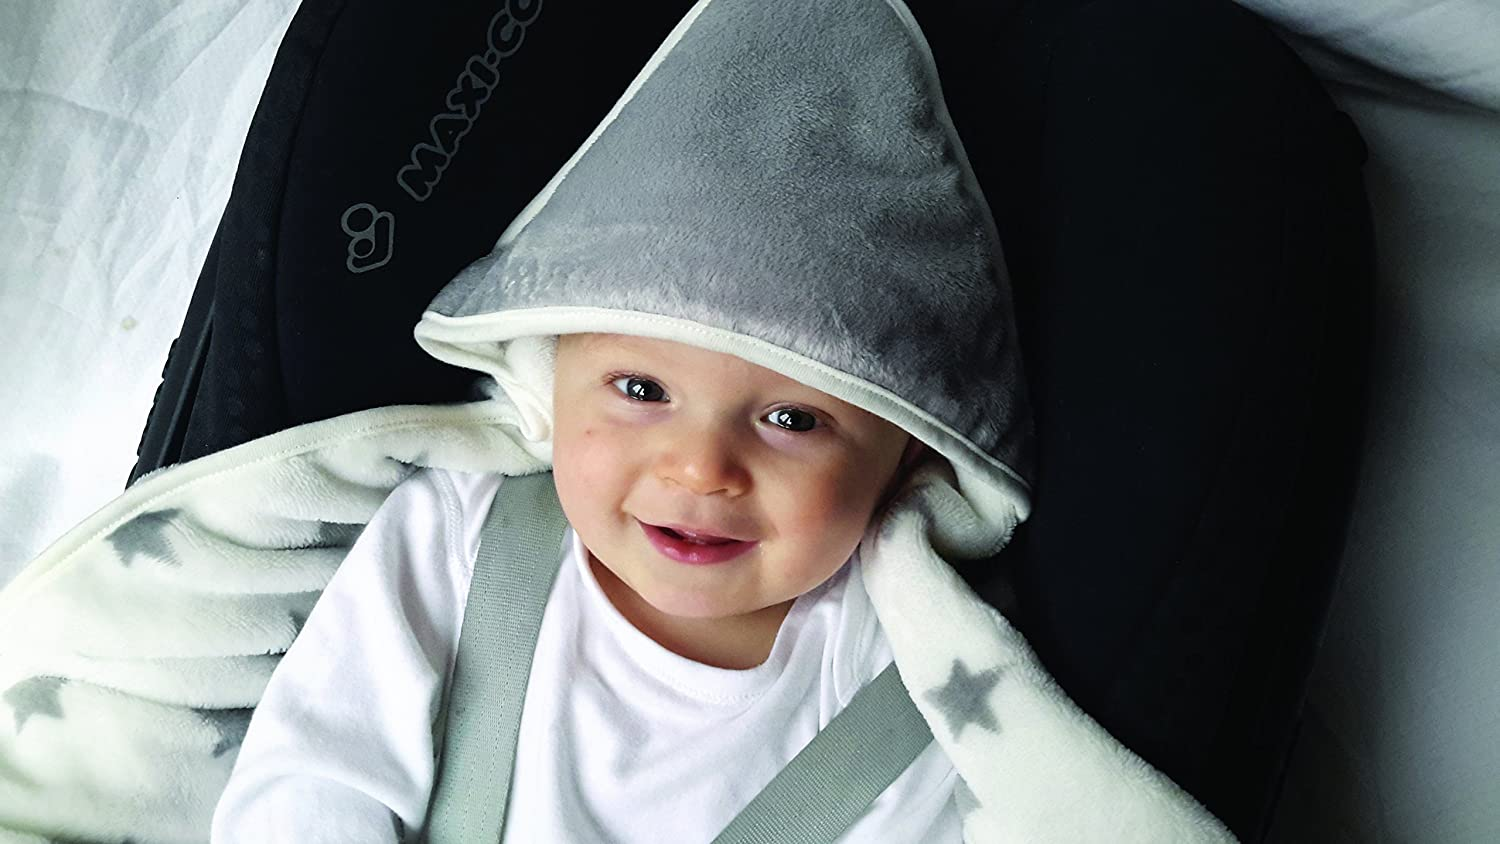 Baby Bundle Snuggleblanki Fleecey Hooded Baby Safety Travel Blanket Compatible with 3 and 5 point Harness - Silver Star Snuggleblanki- Silver